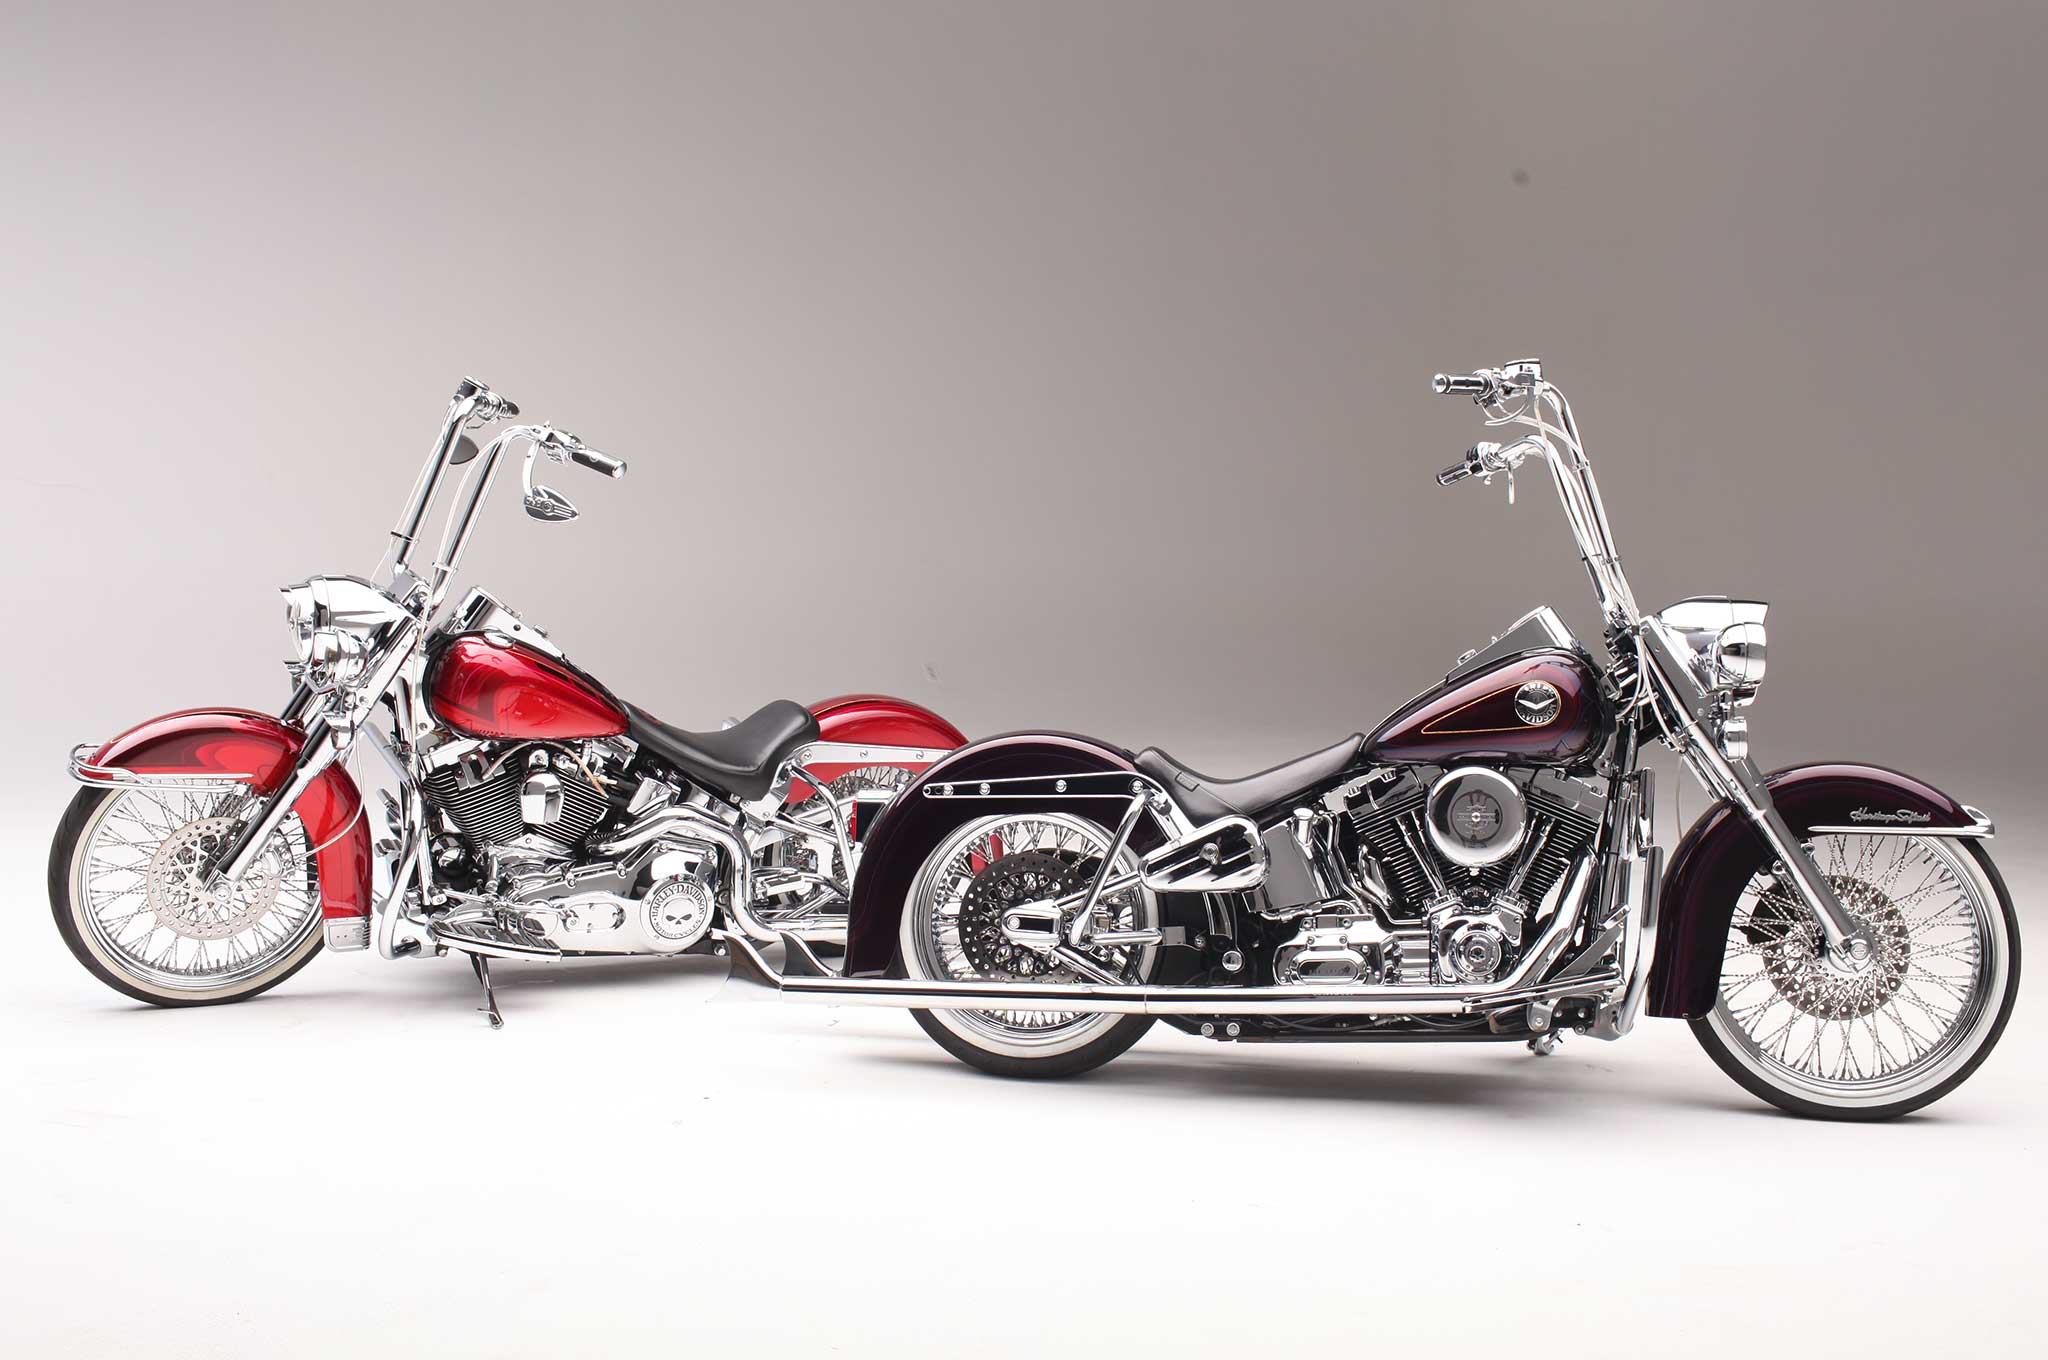 Heritage Softail Deluxe Two Harleys One Painter Harley Davidson 21